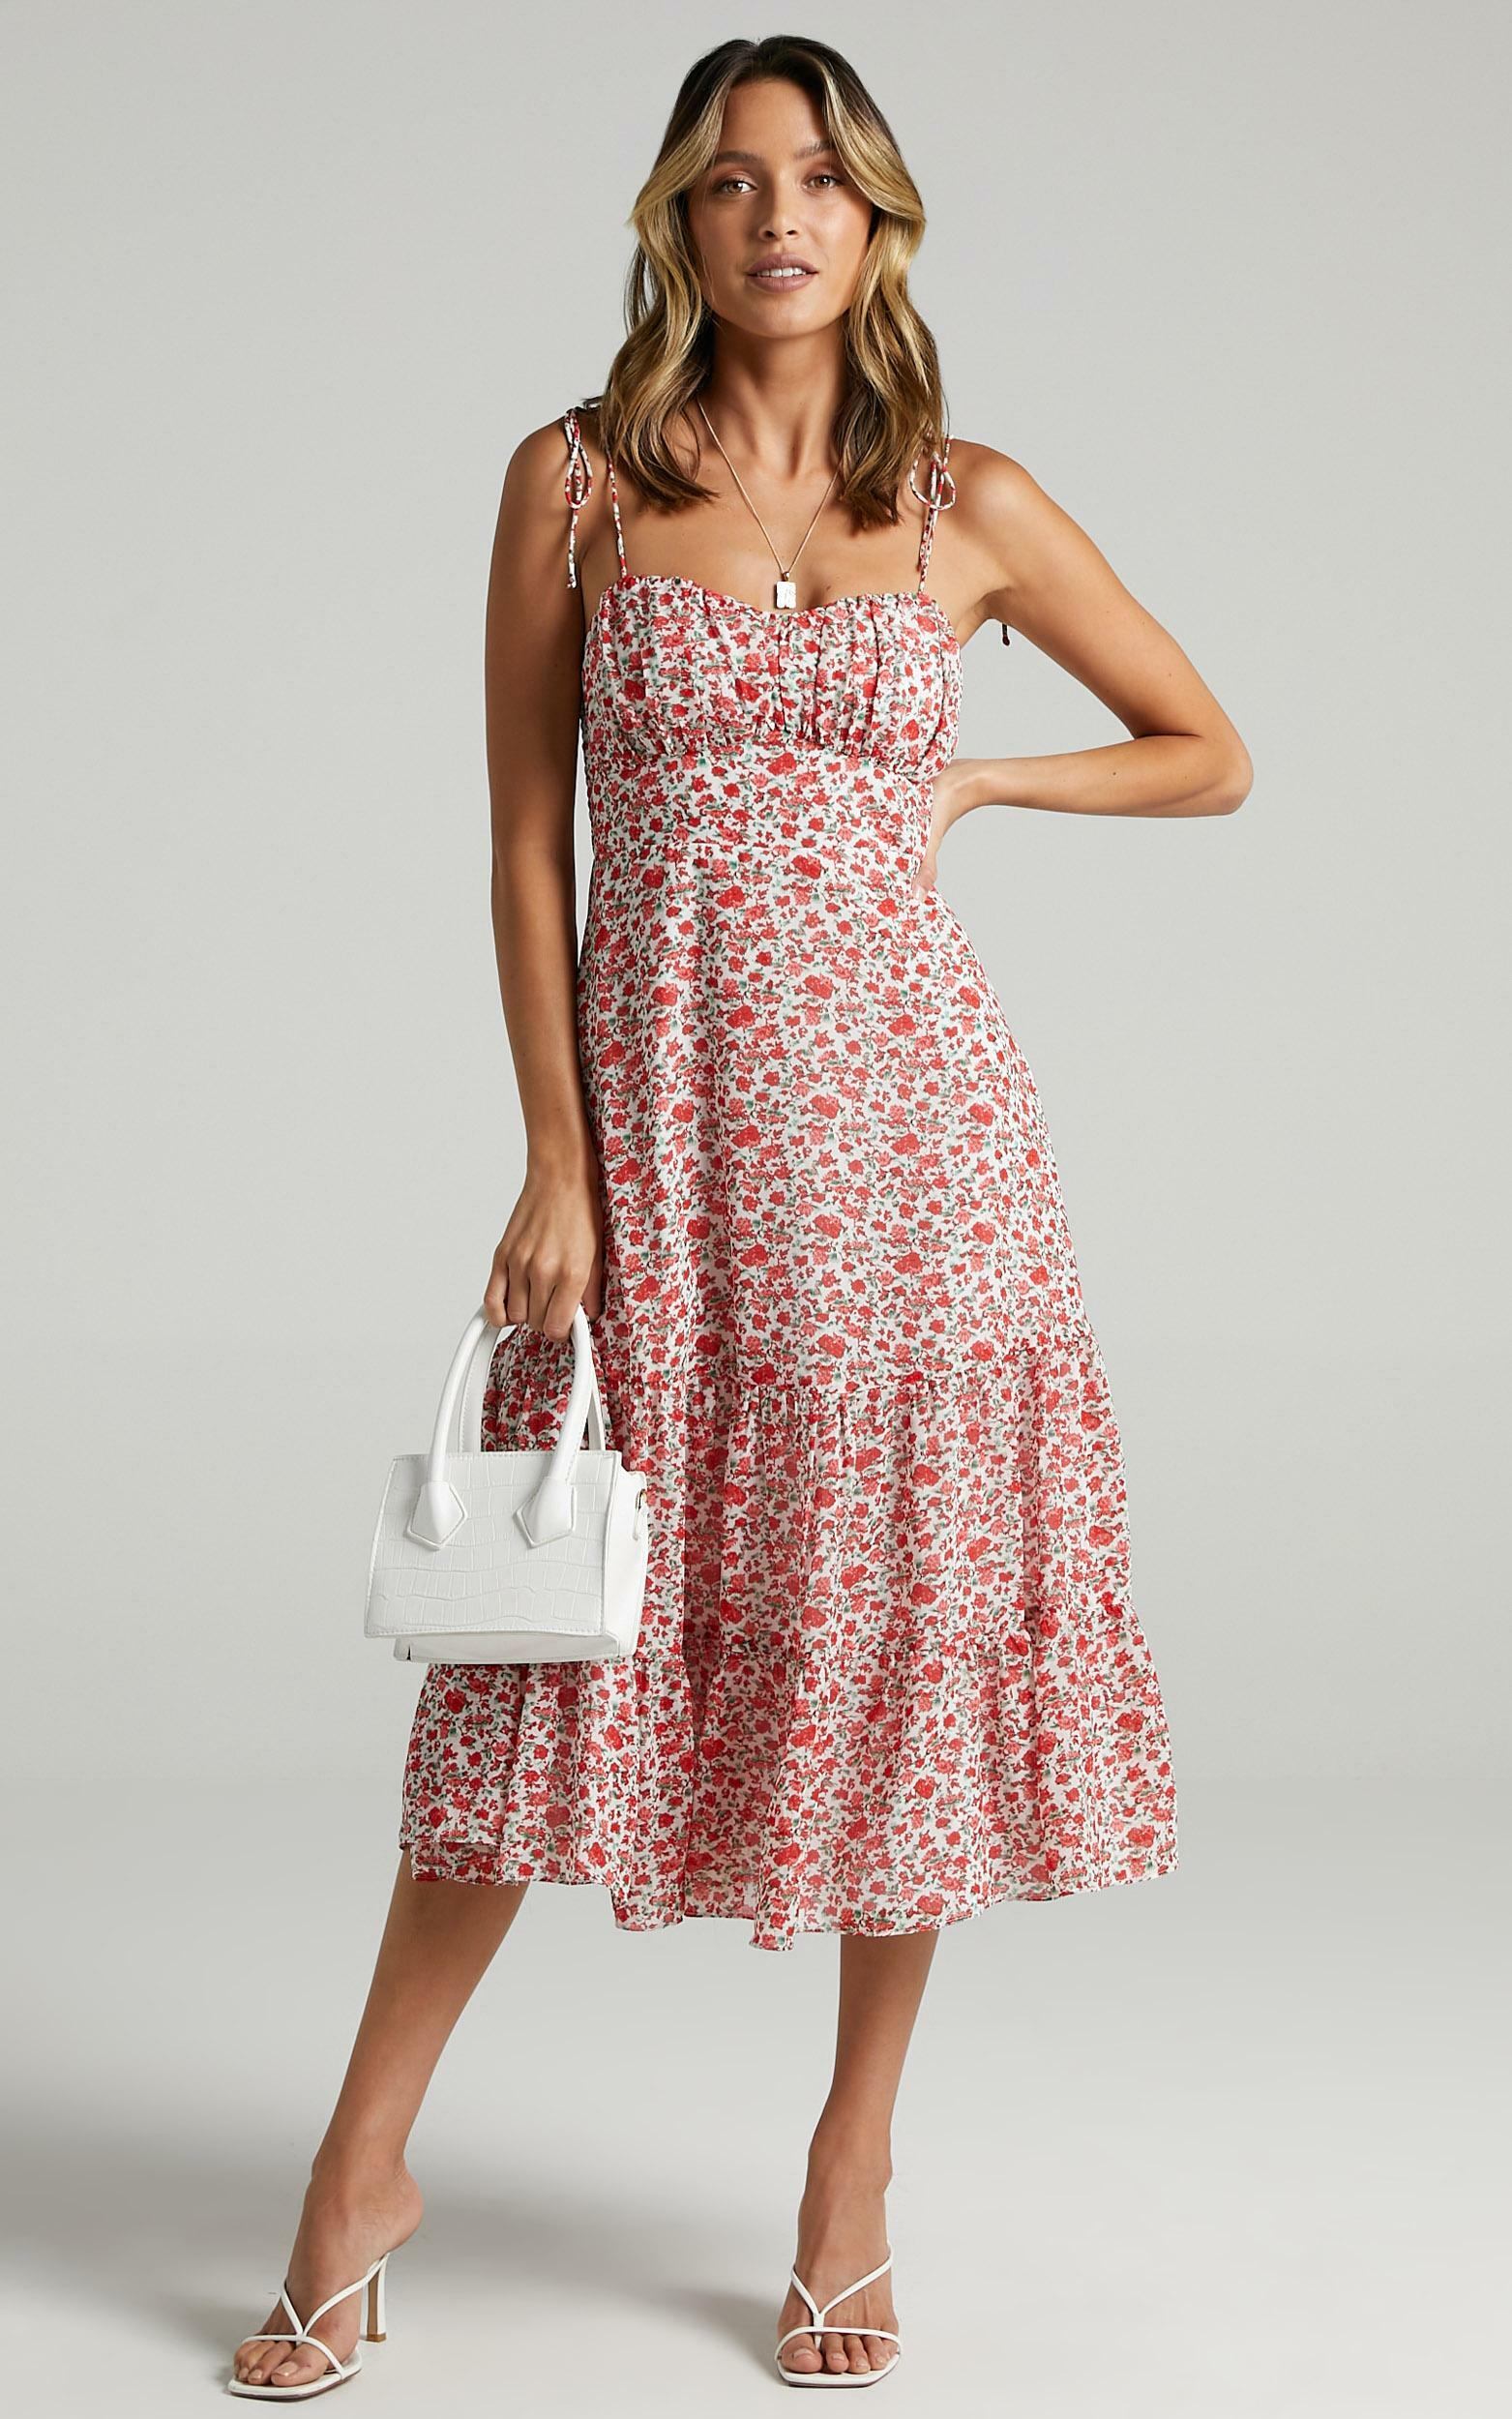 Monaco Sweetheart Midi Dress in White Floral - 20, WHT3, hi-res image number null